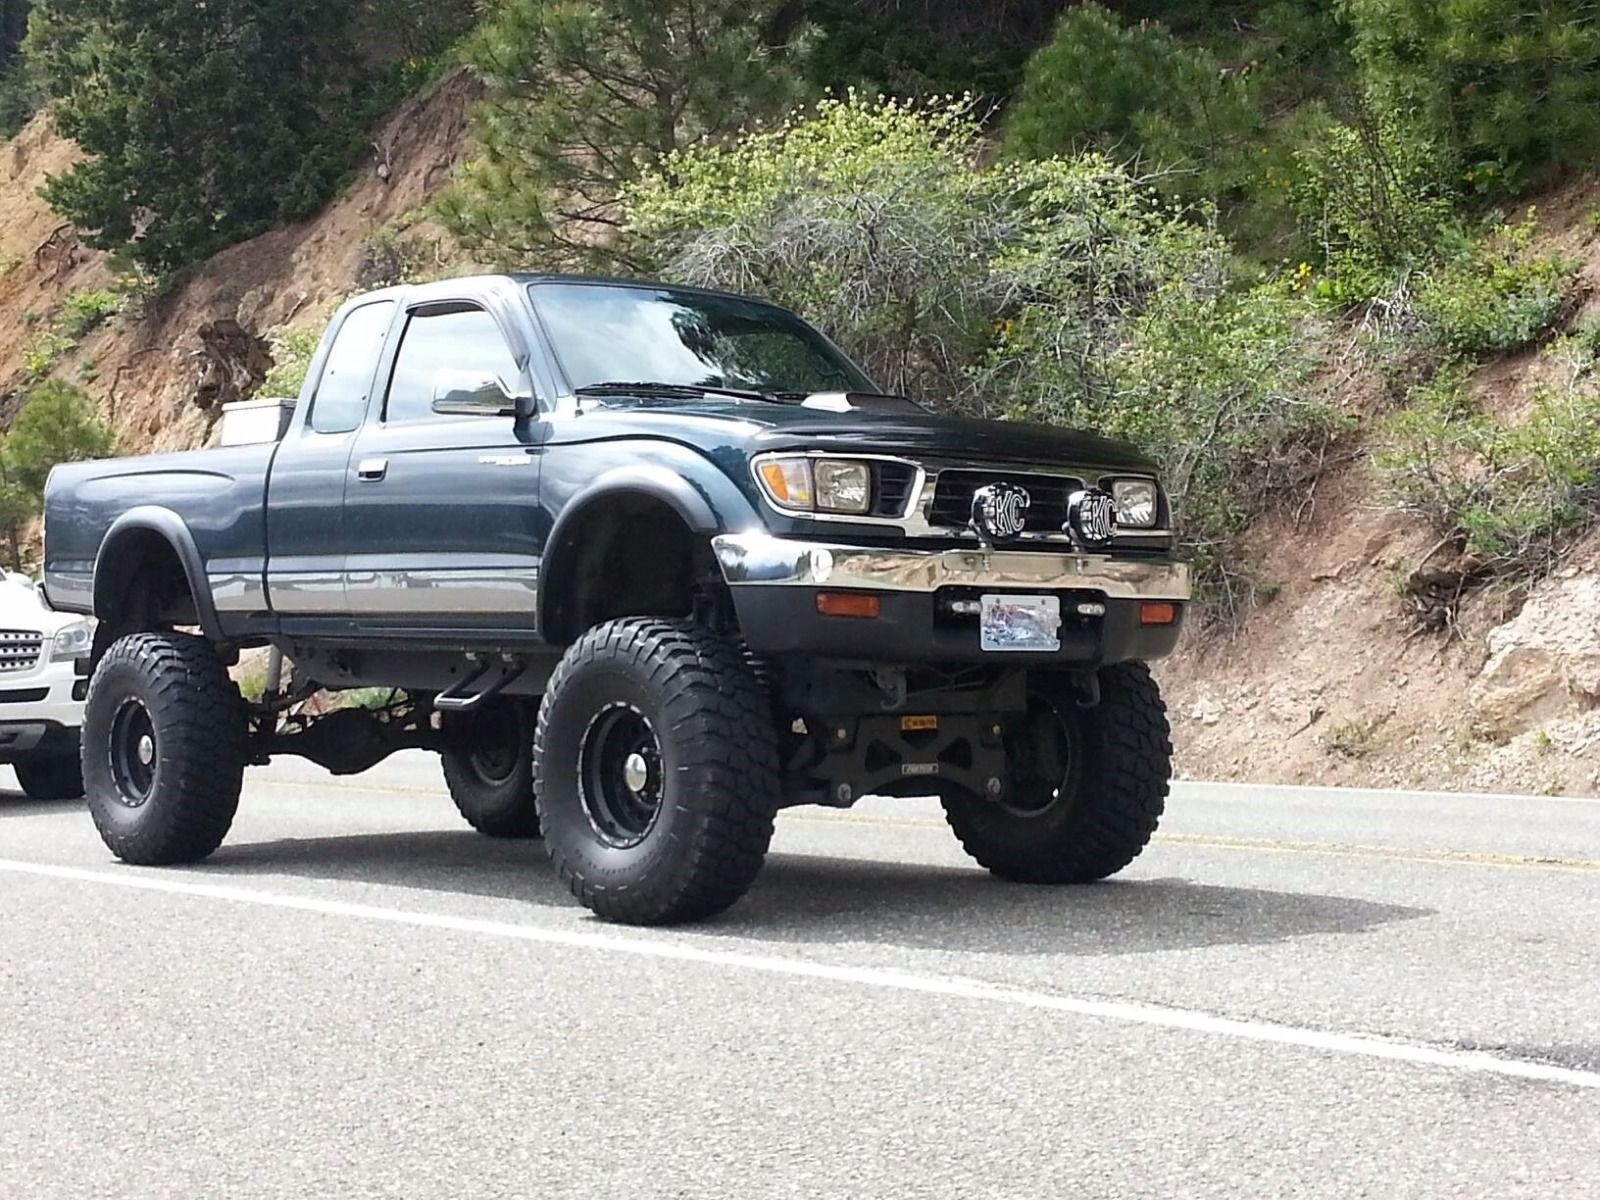 Toyota Tacoma Sr Pickups For Sale on Toyota Tacoma Extended Cab 4x4